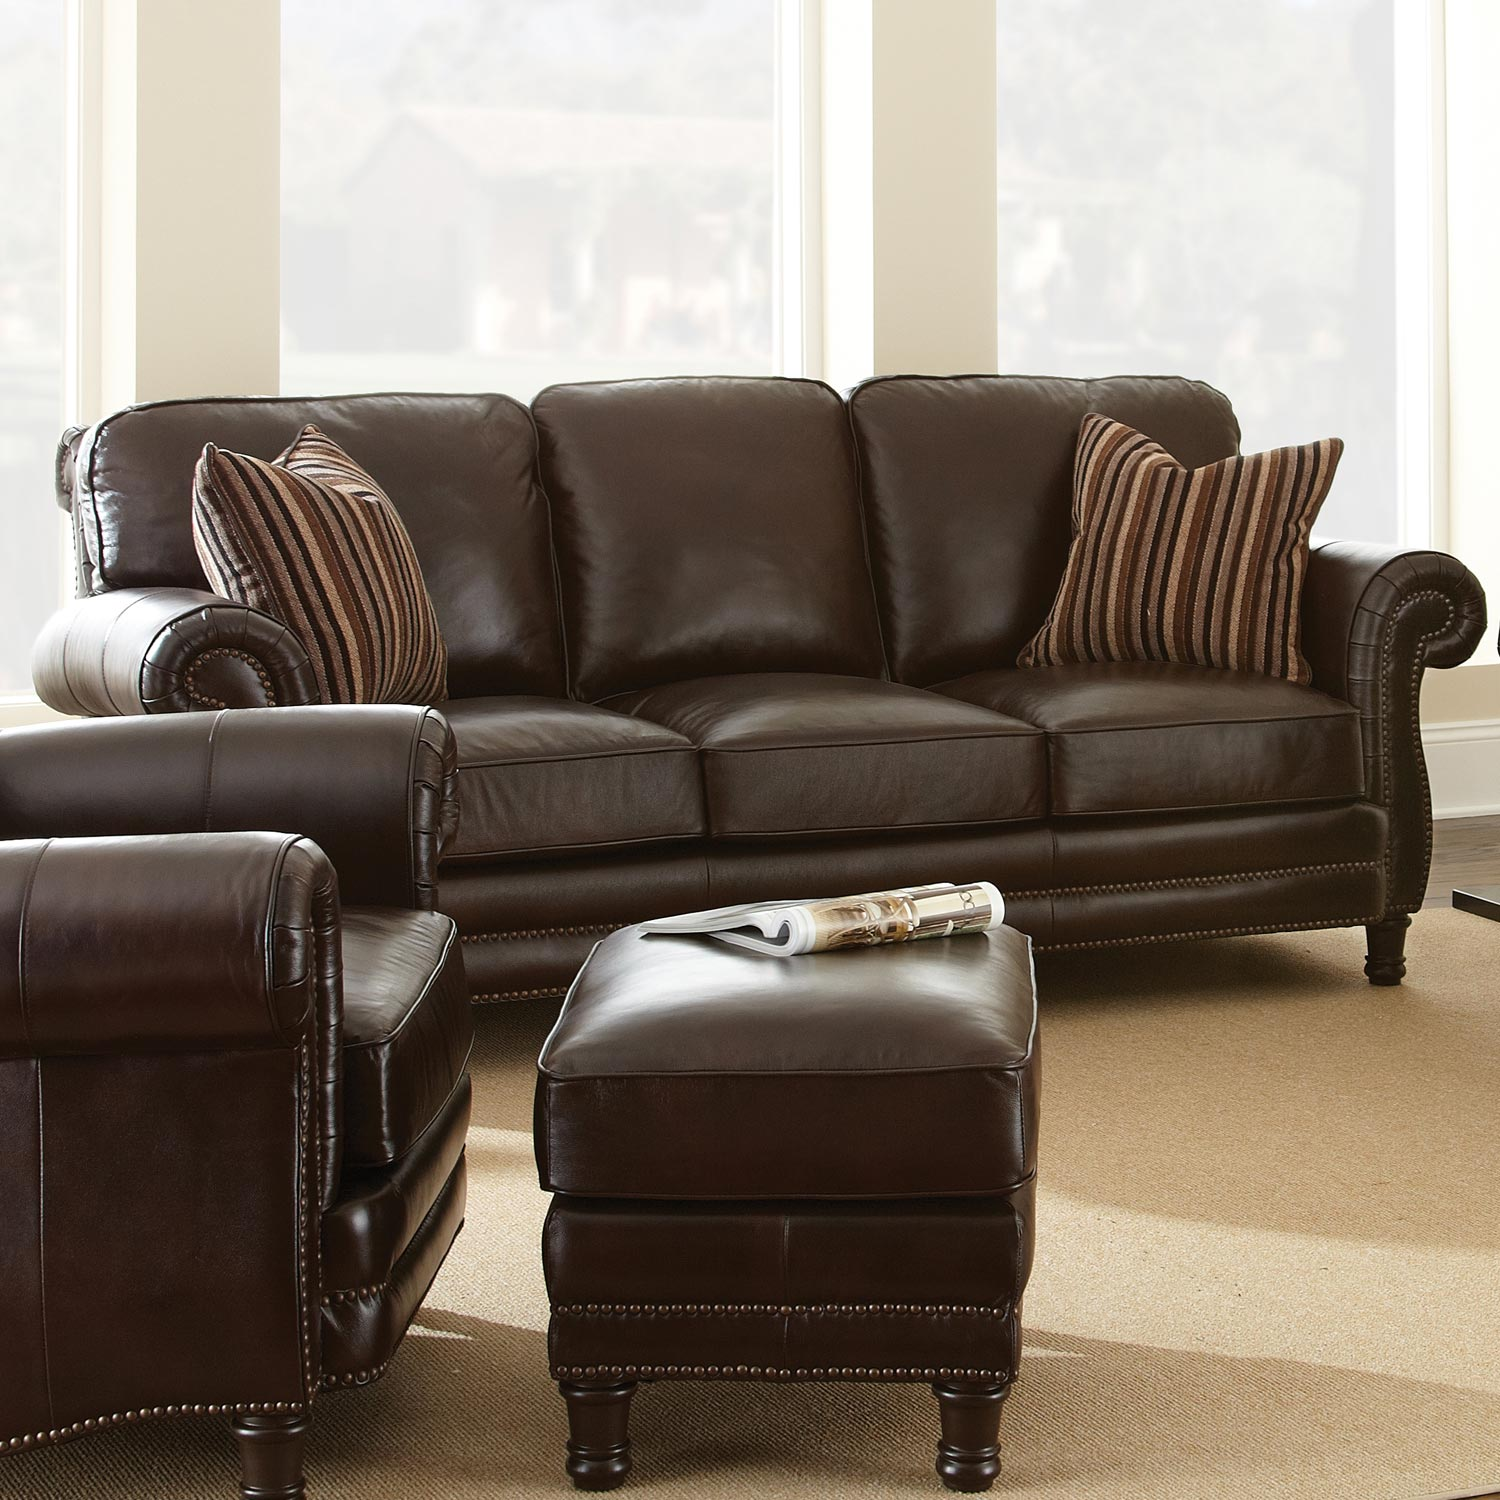 Genial ... Chateau 3 Piece Leather Sofa Set   Antique Chocolate Brown    SSC CH860 3PC ...